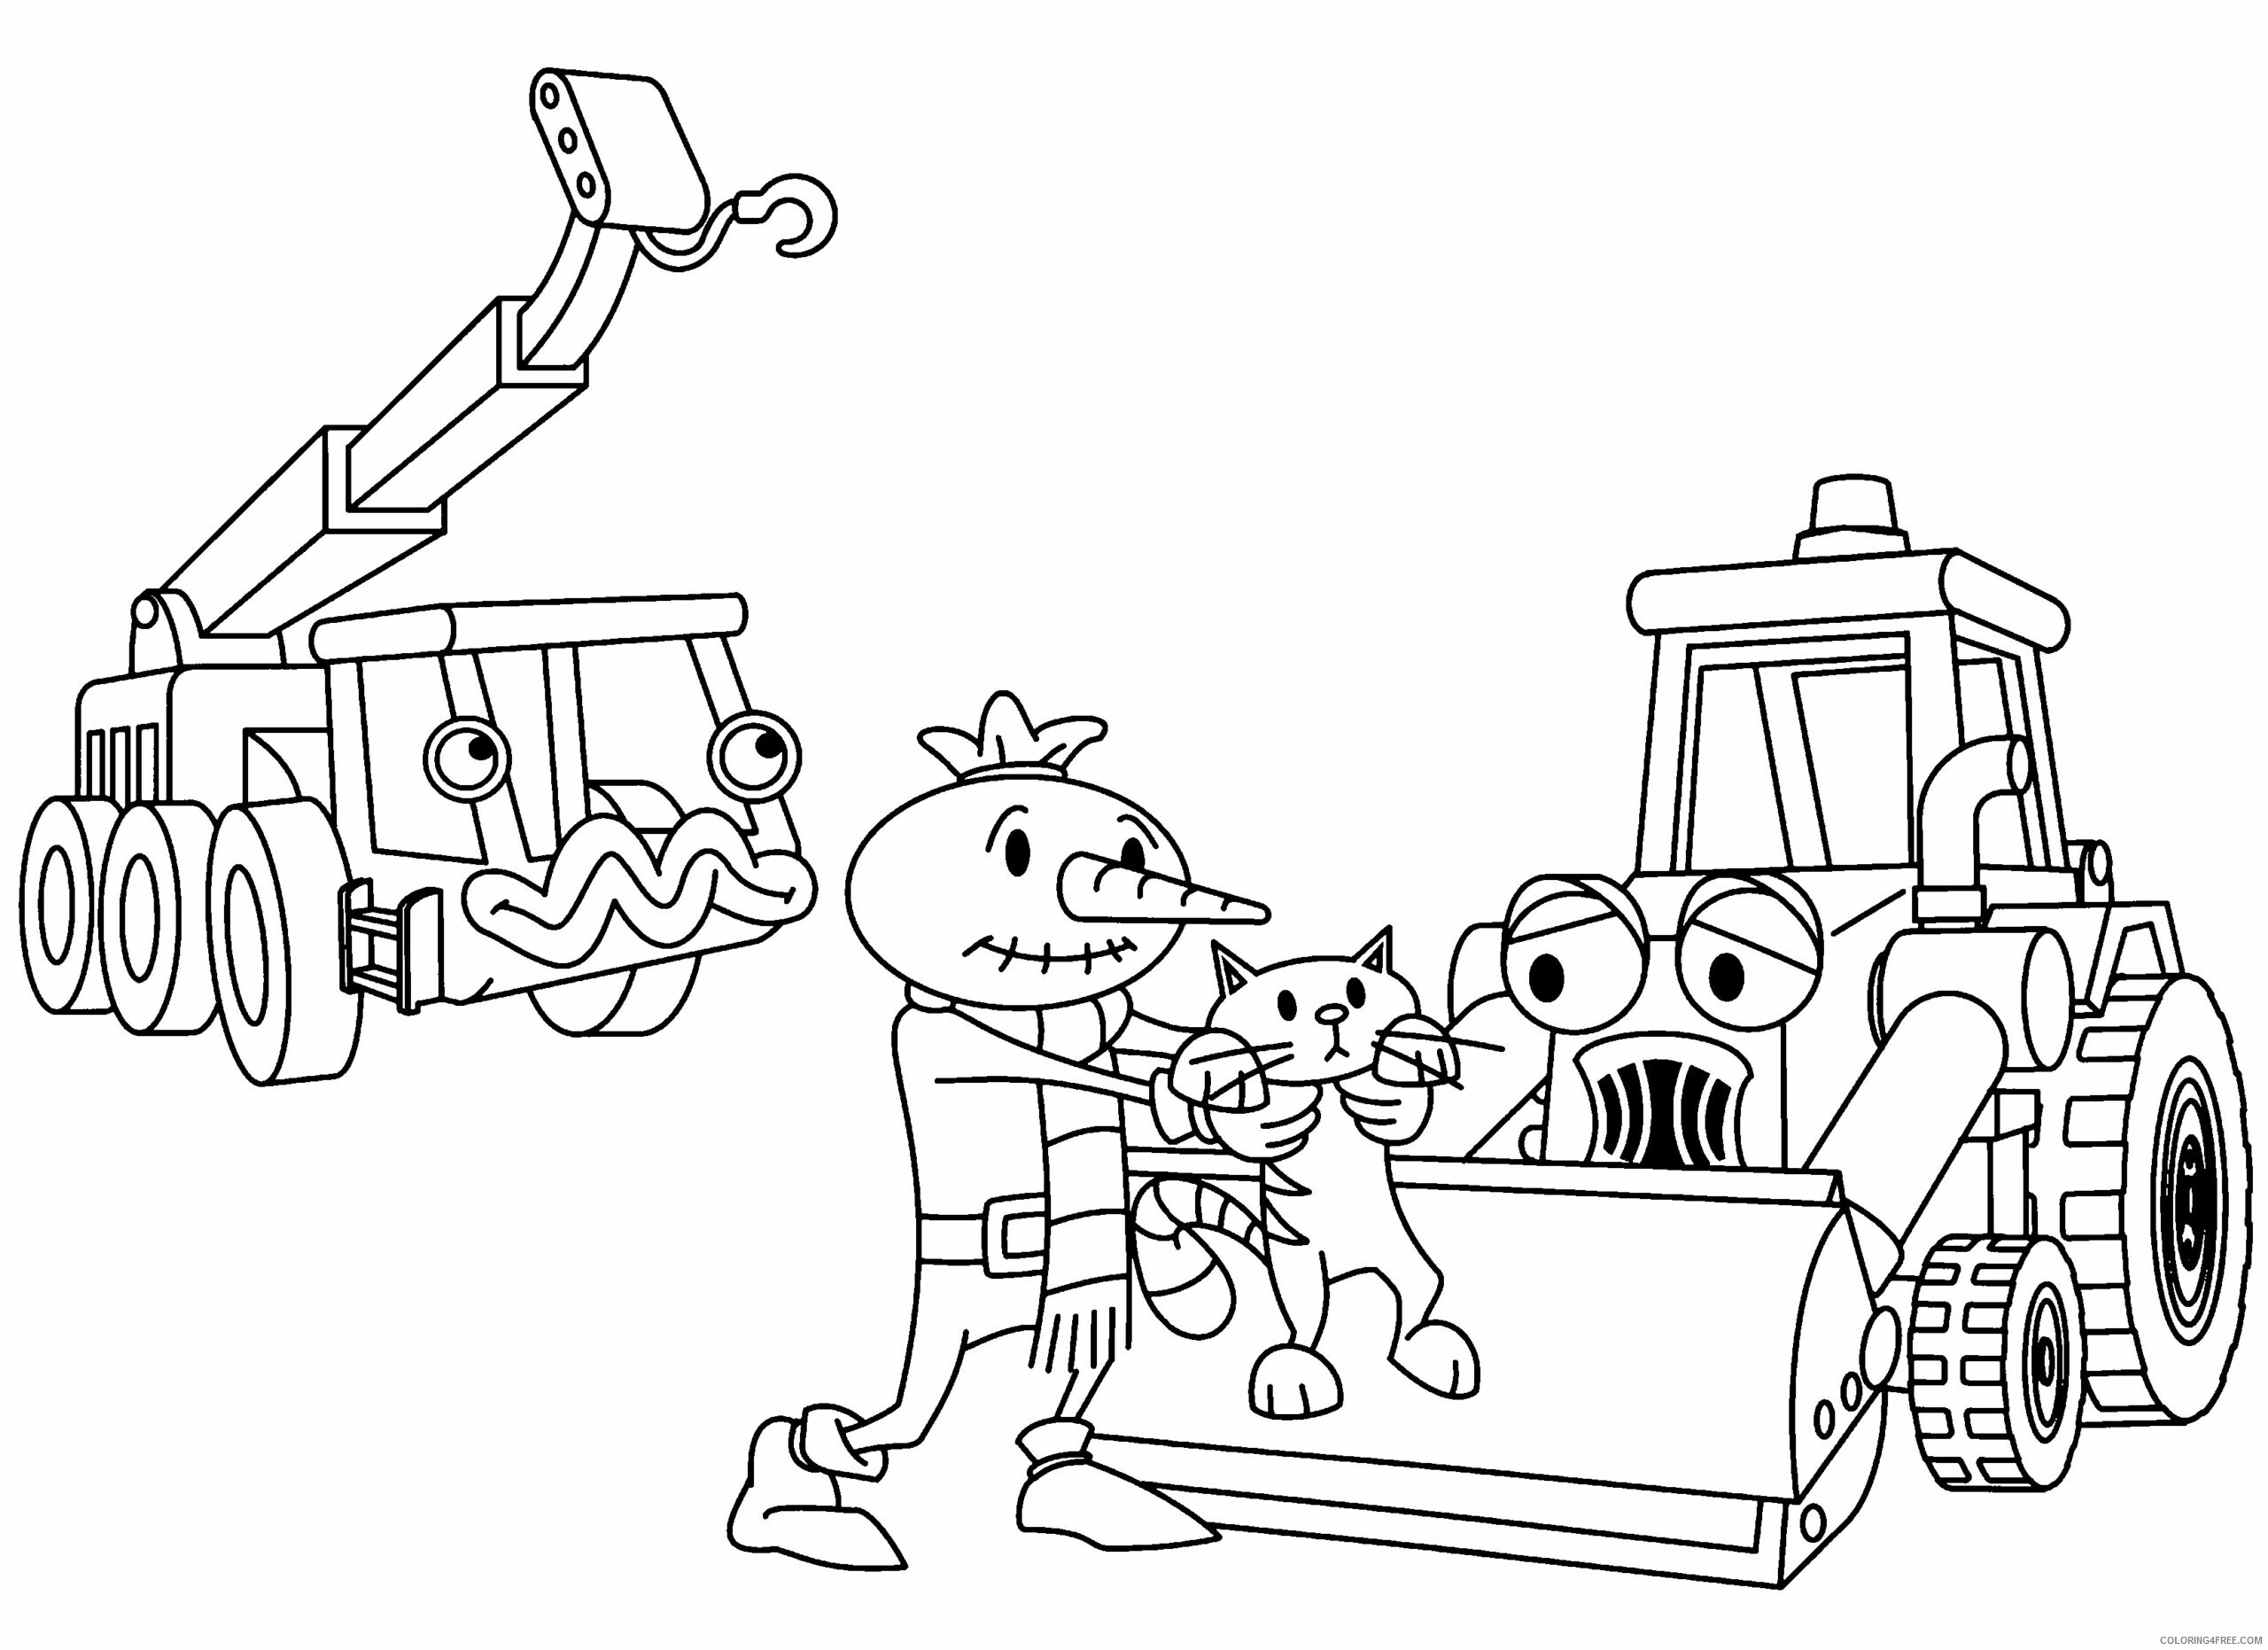 Bob the Builder Coloring Pages TV Film bob the builder 78 Printable 2020 01099 Coloring4free